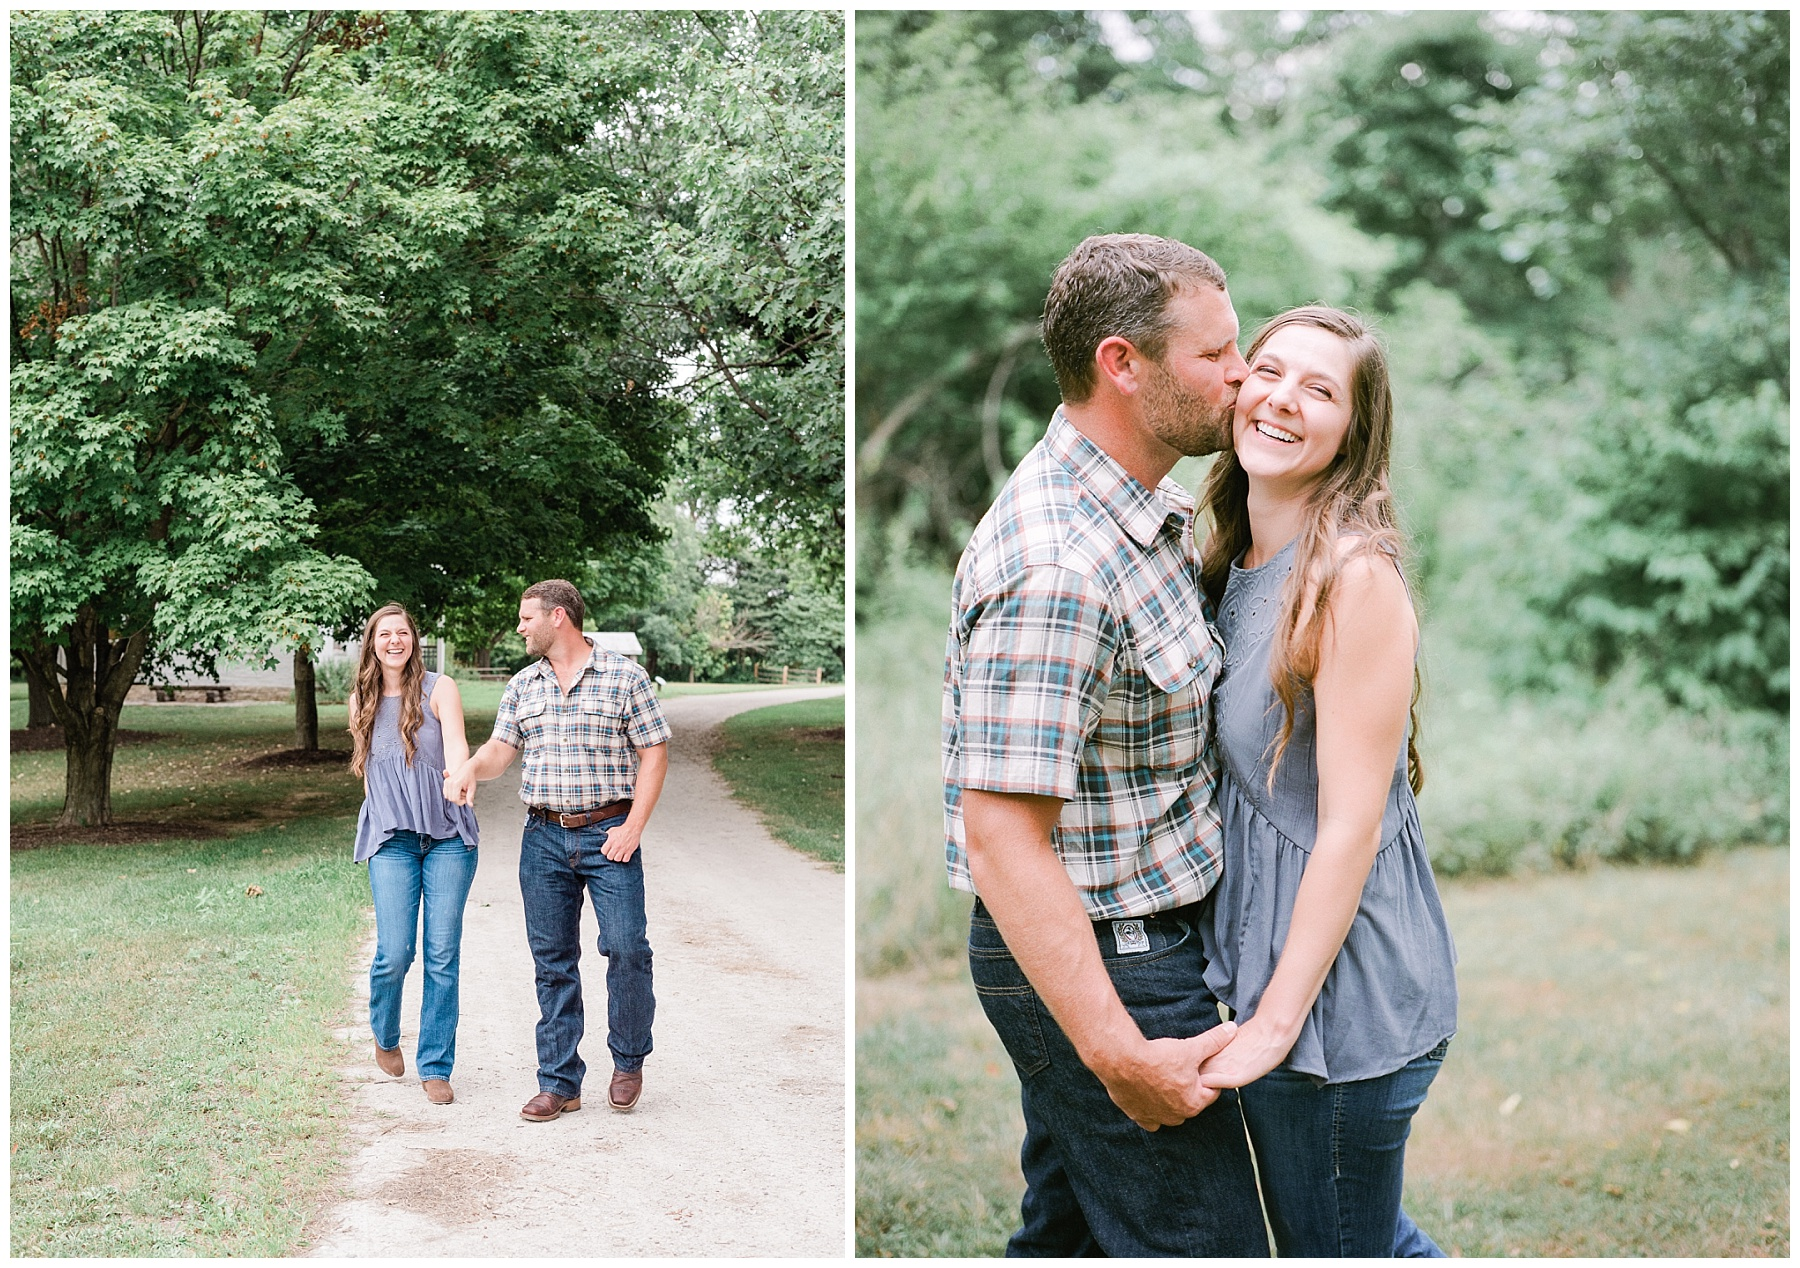 Sunset Engagement Session at Faust Park Chesterfield Missouri by Kelsi Kliethermes Photography_0014.jpg